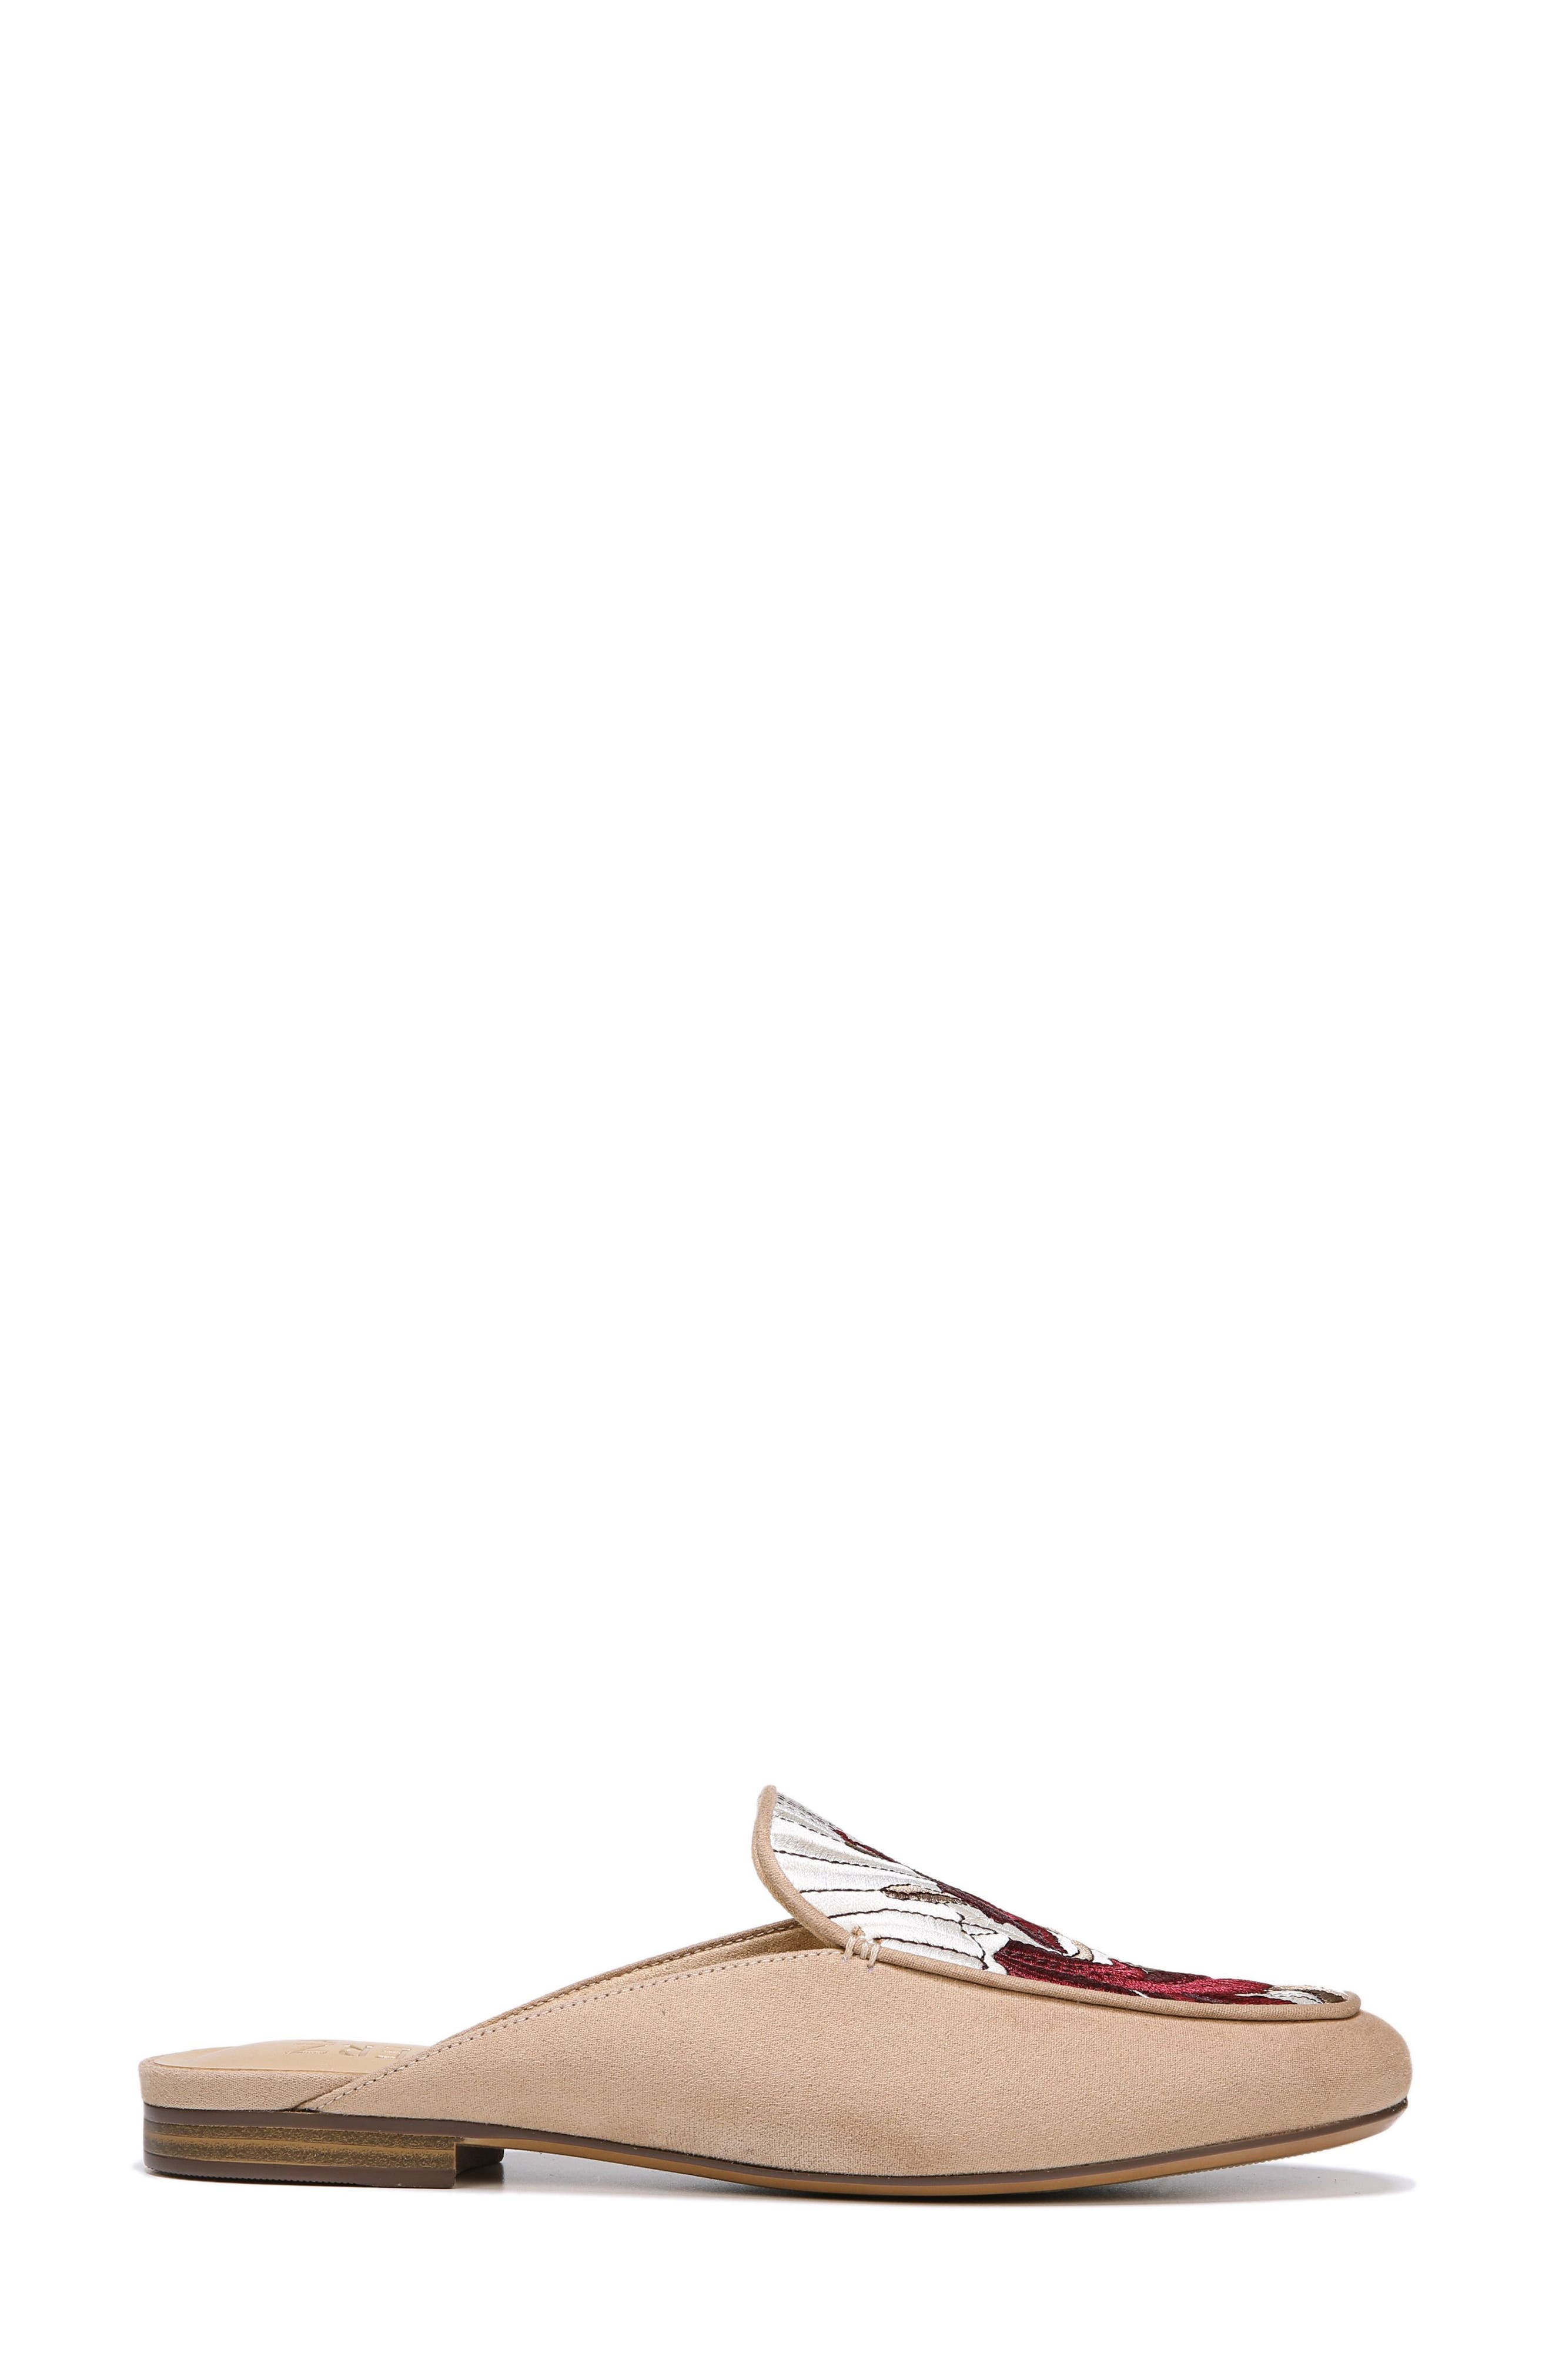 Eden II Embroidered Mule,                             Alternate thumbnail 3, color,                             Barley Fabric